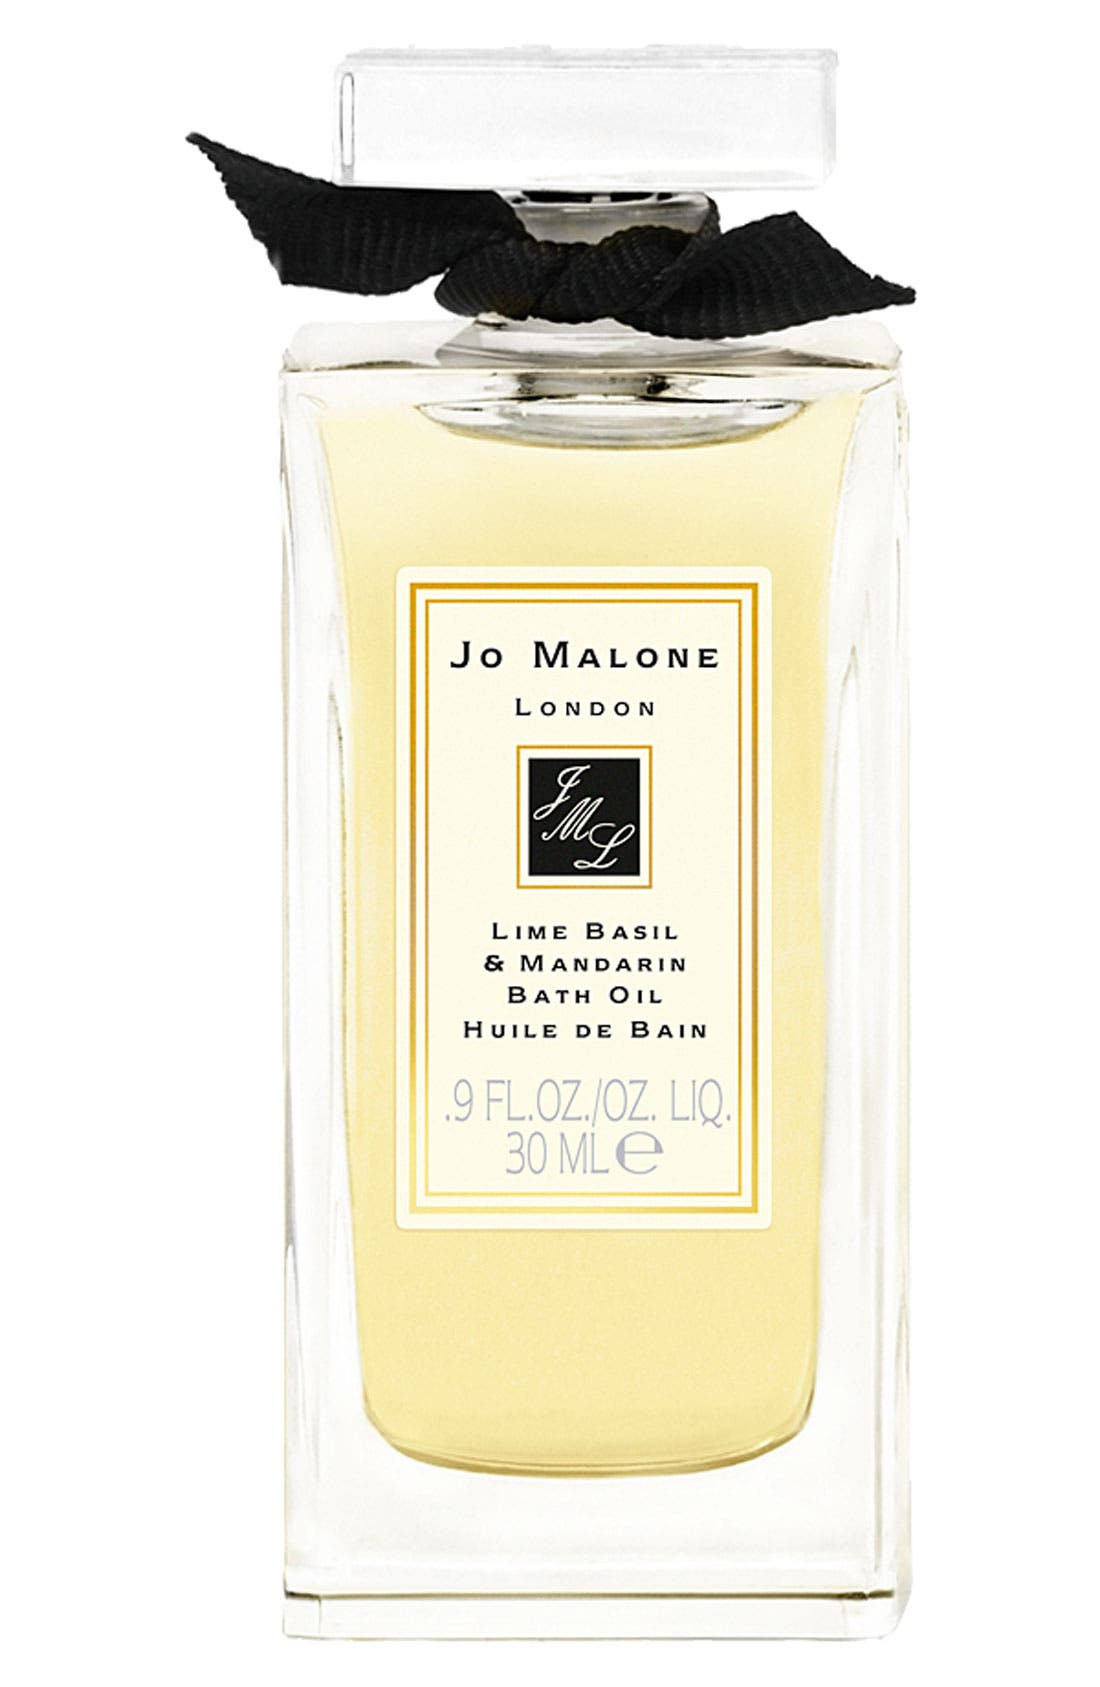 JO MALONE LONDON™ Lime Basil & Mandarin Bath